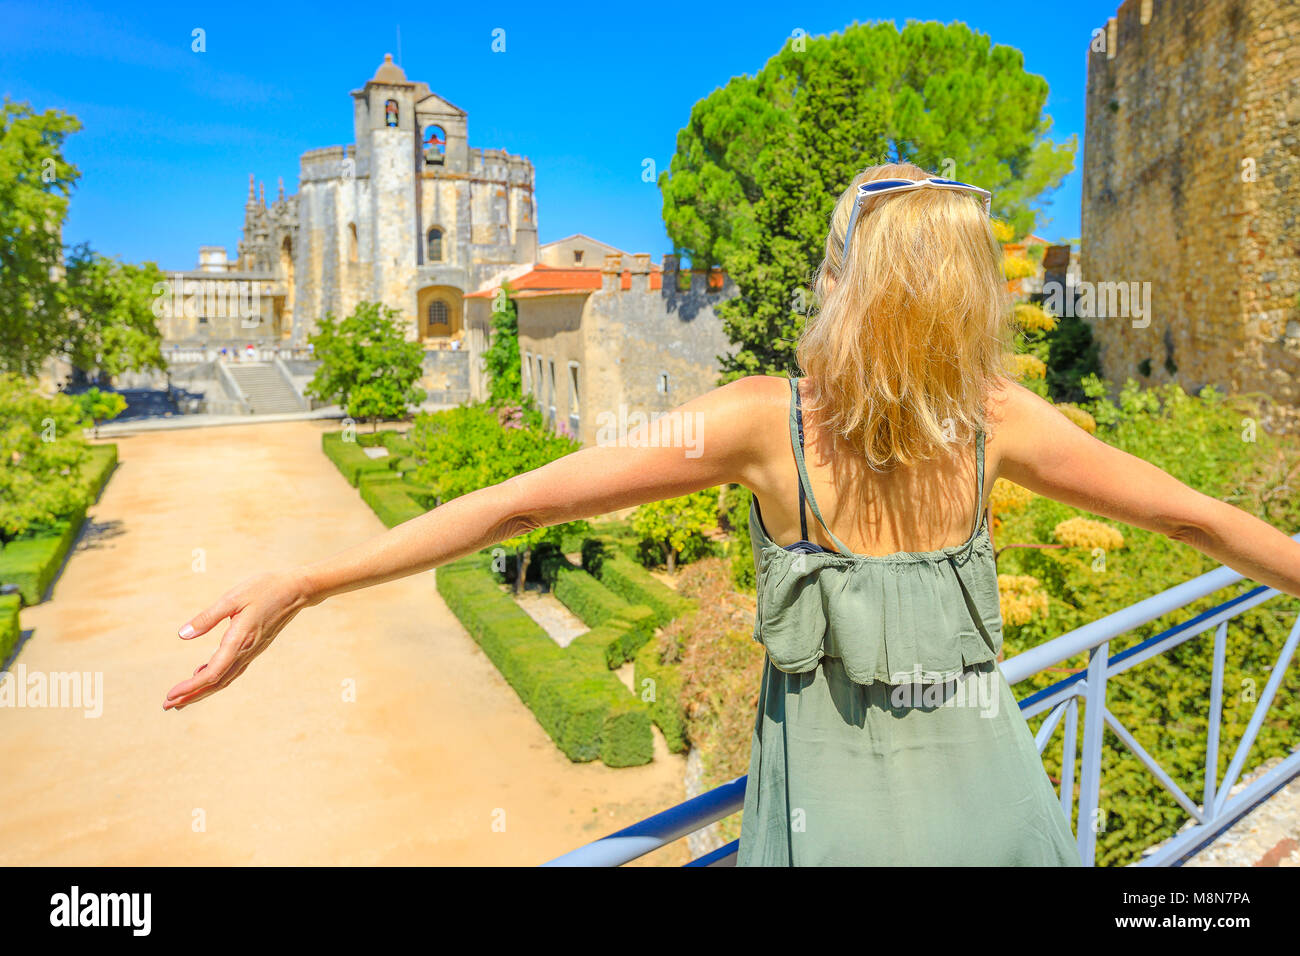 Tourism in Portugal. Freedom lifestyle woman at Templar Monastery or Convent of Christ on blurred background. Female Stock Photo